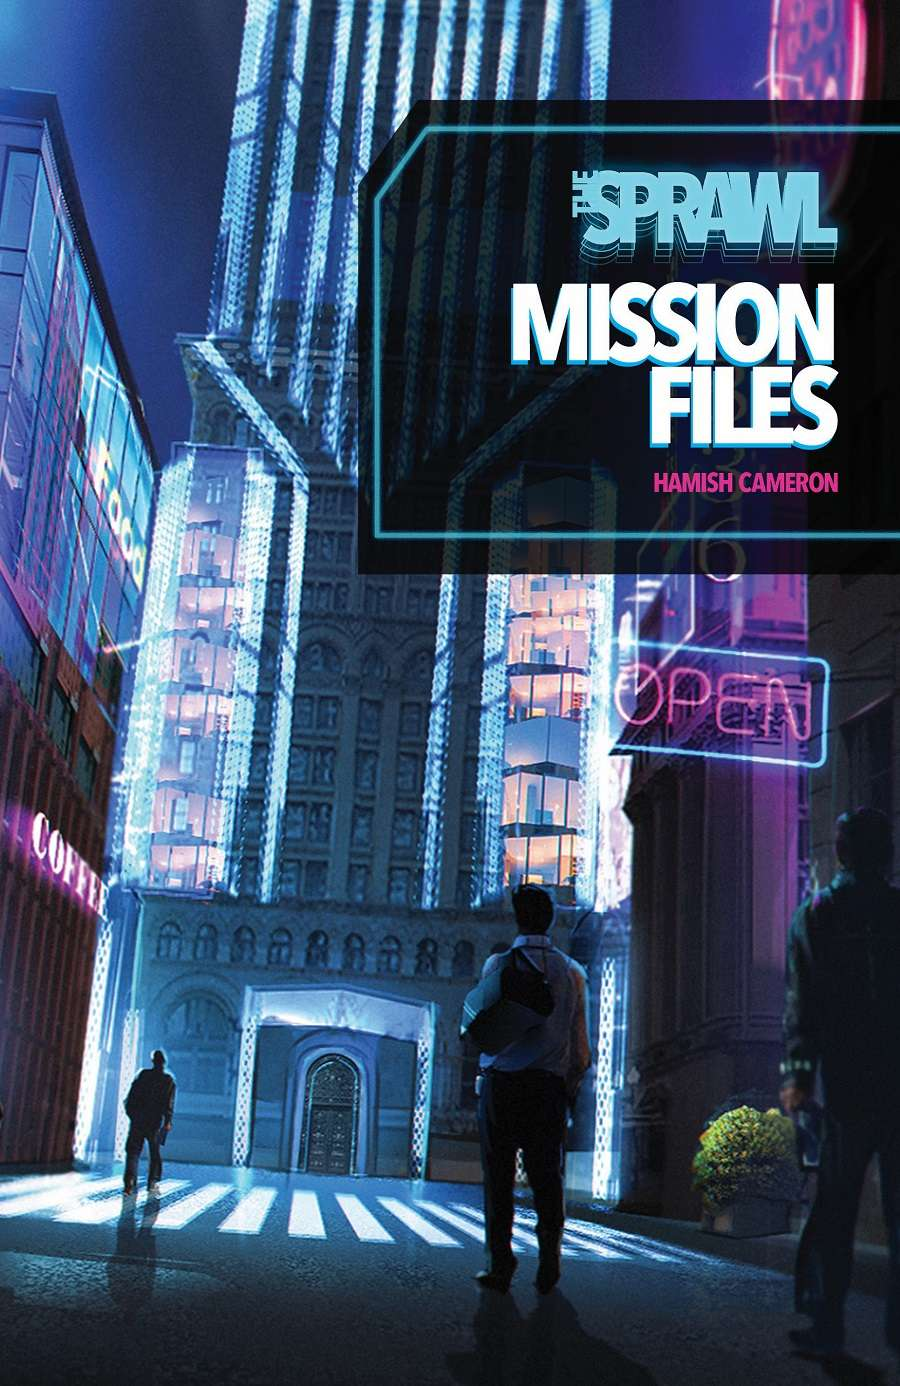 The Mission Files cover